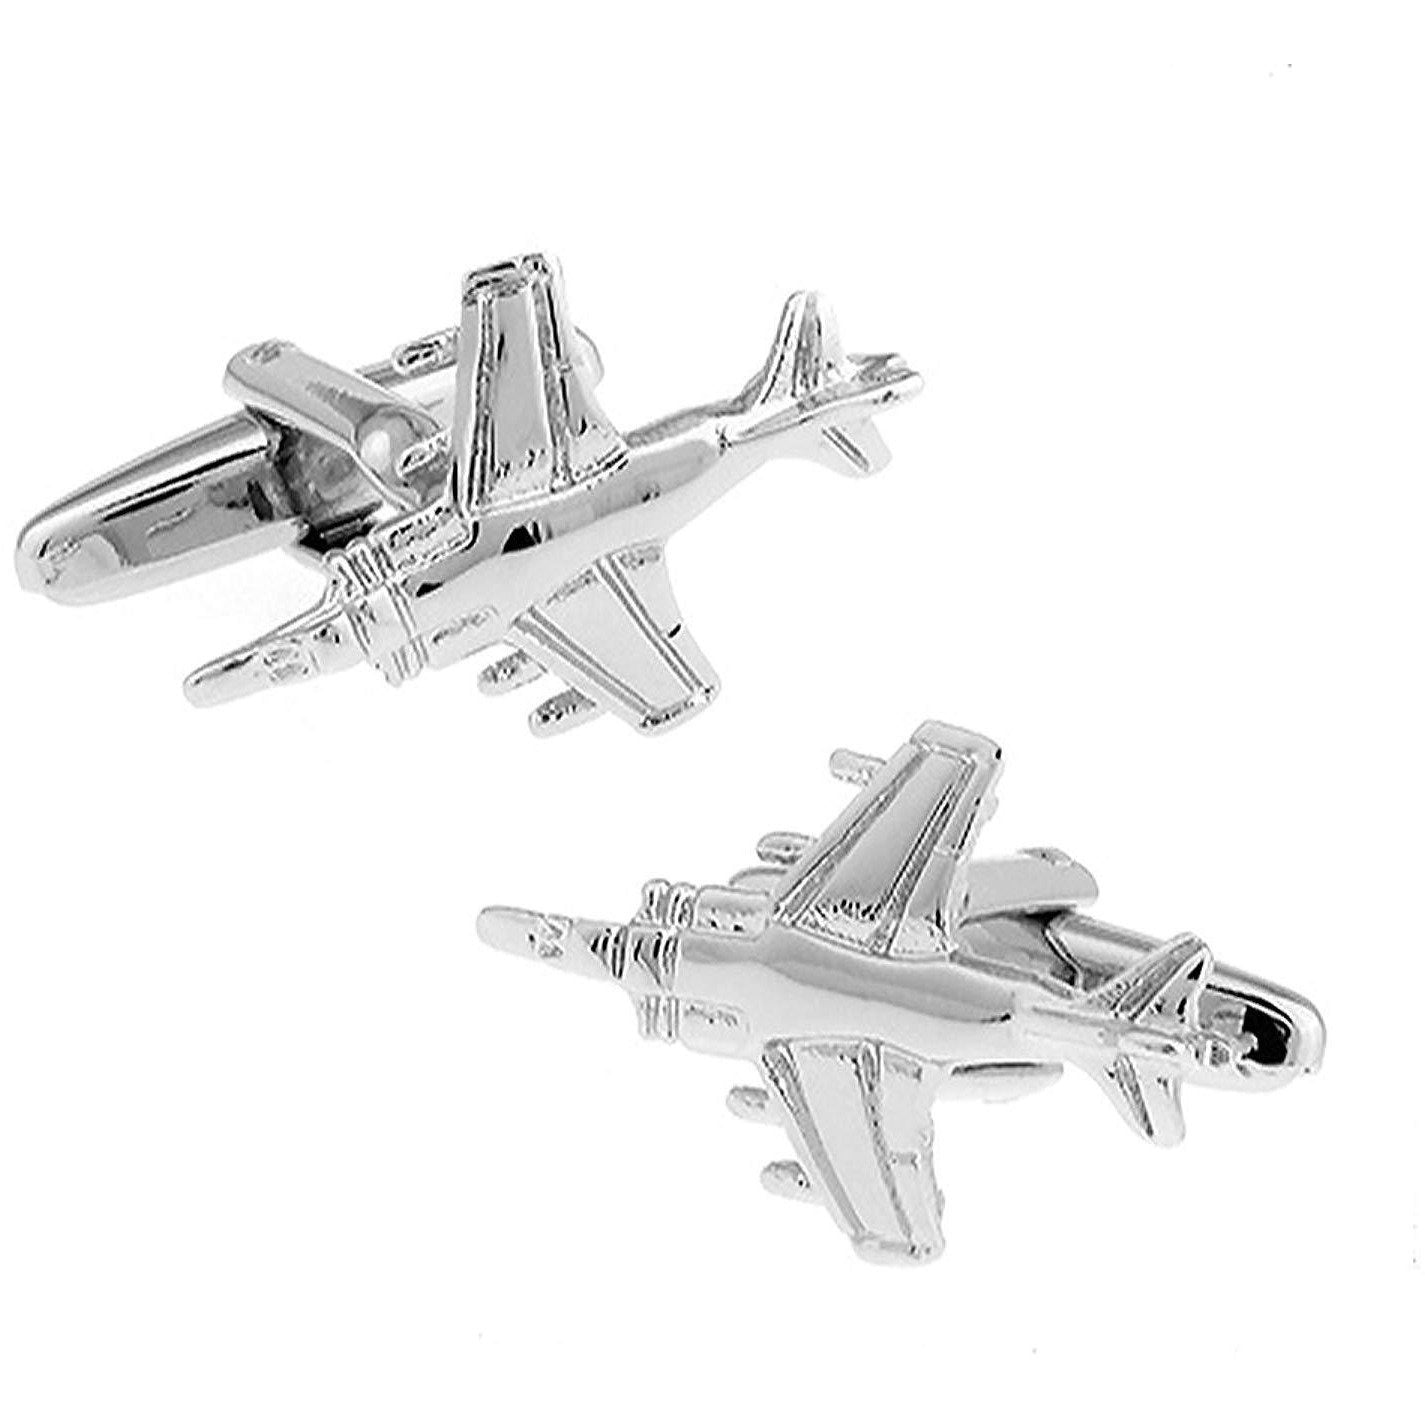 Harrier Jump Jet Mach 7 Fighter  Aeroplane Cufflinks